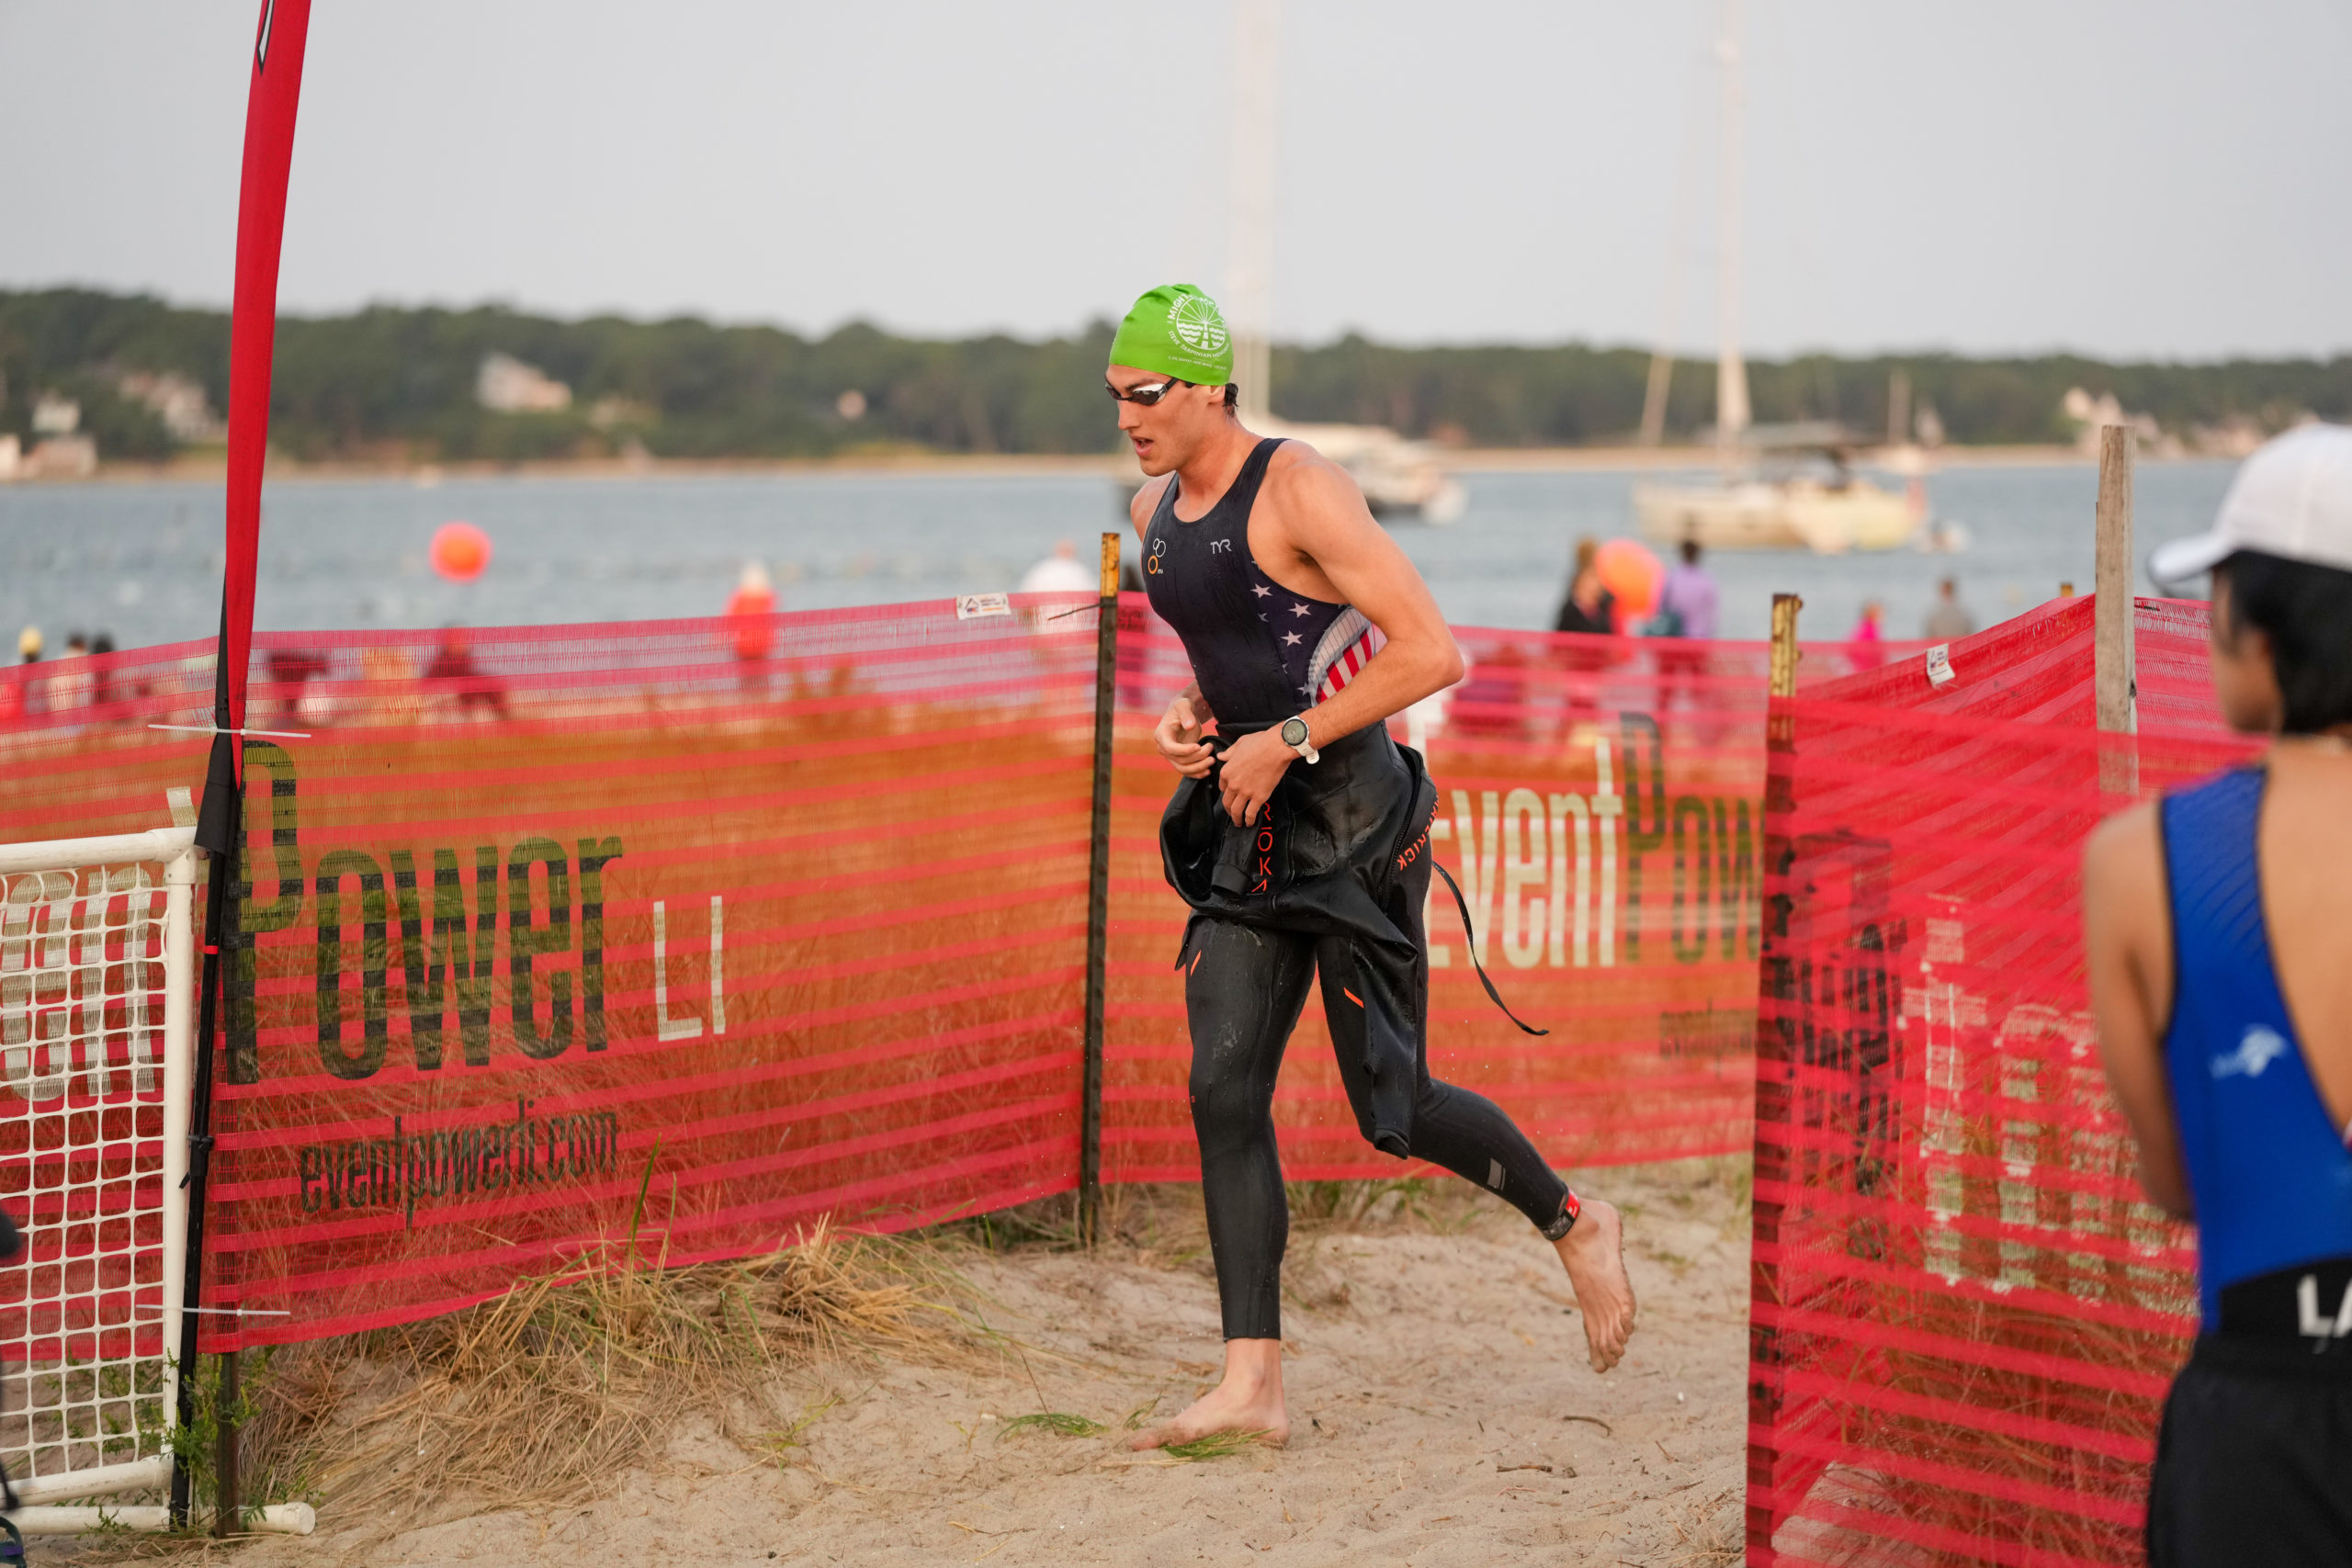 An athlete transitions from the swim to the bike portion of the triathlon.